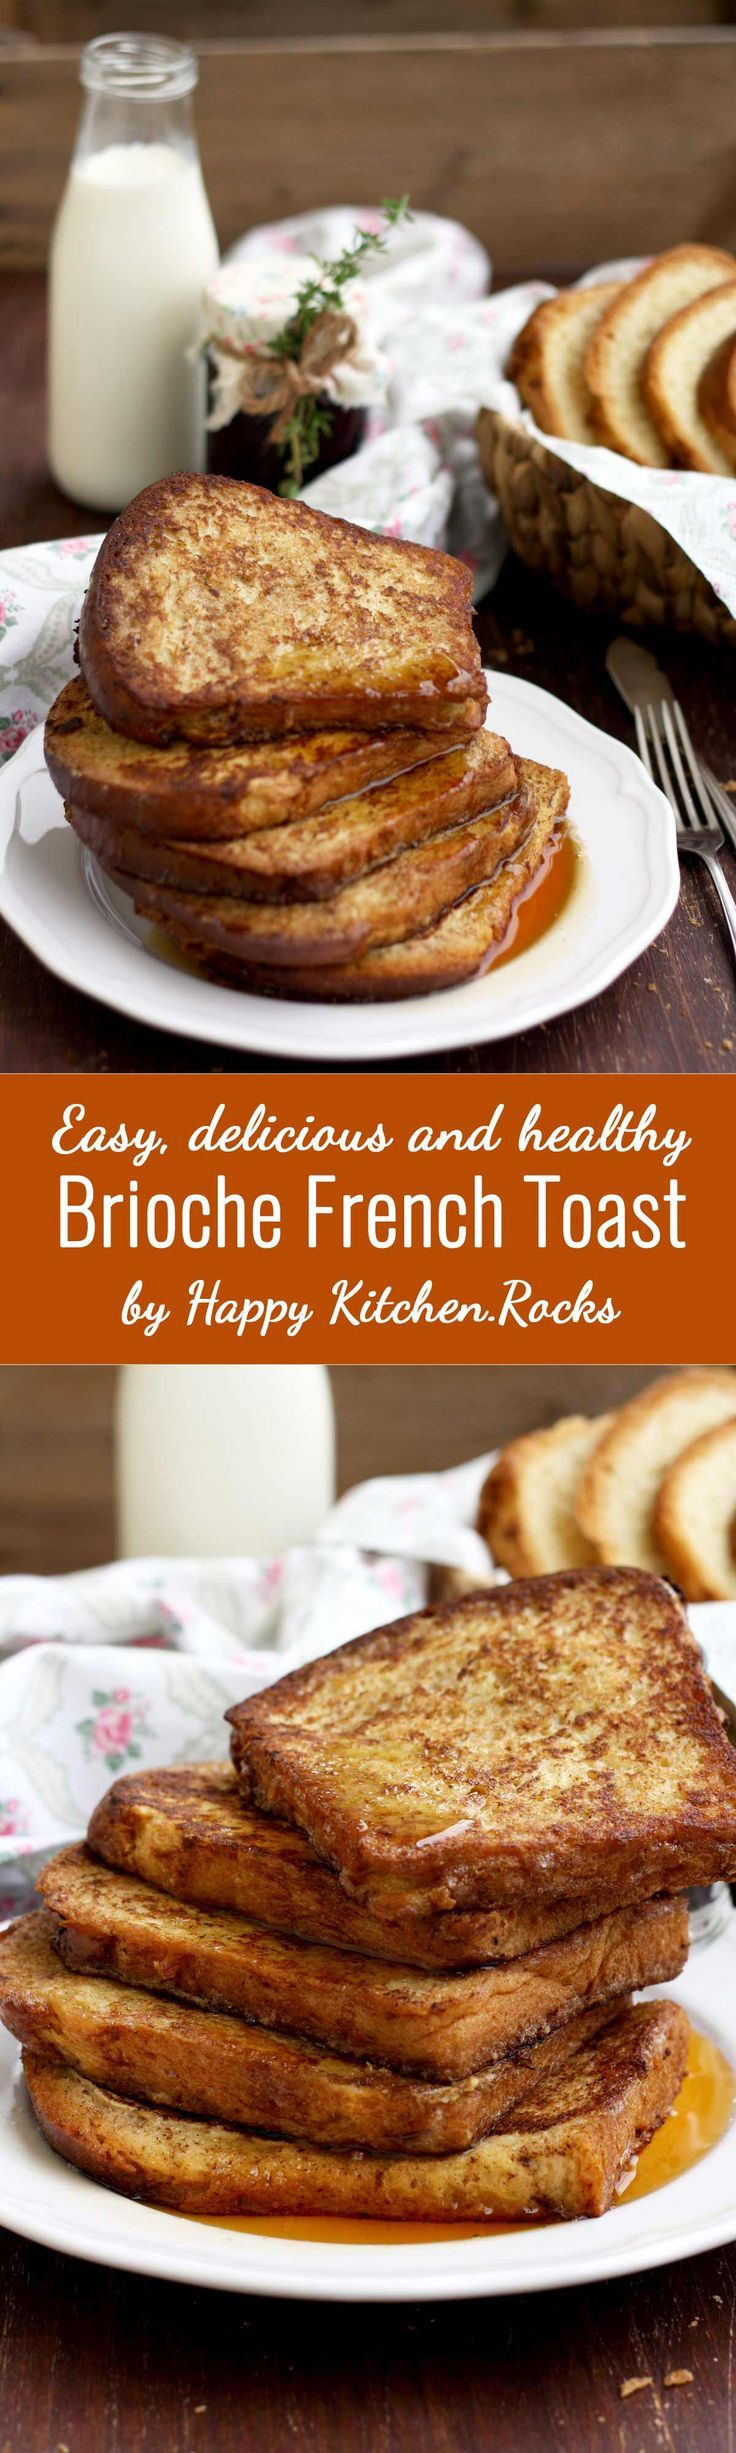 Healthier Brioche French Toast Brioche French Toastbrioche Breadhomemade